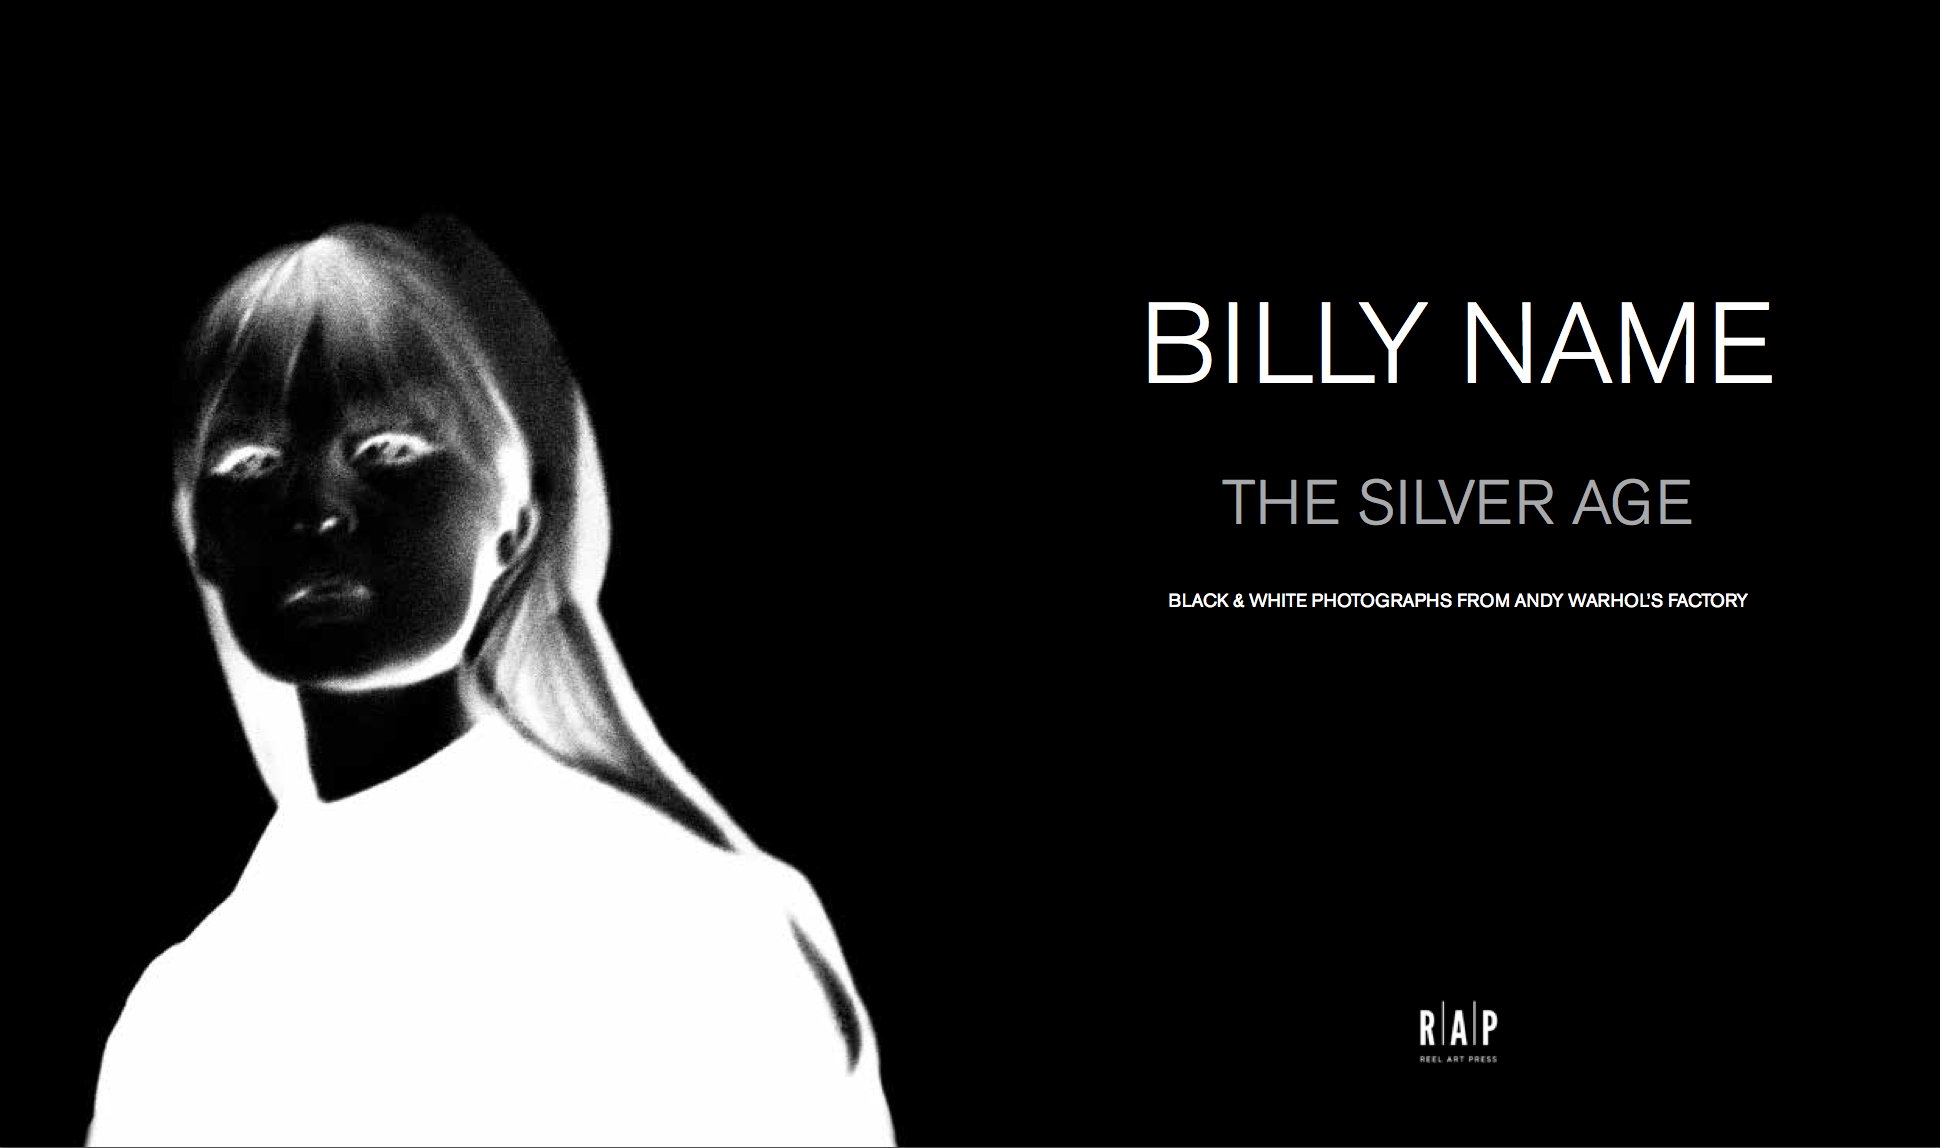 Billy name the silver age black and white photographs from andy warhols factory amazon co uk billy name john cale glenn obrien gerard malanga